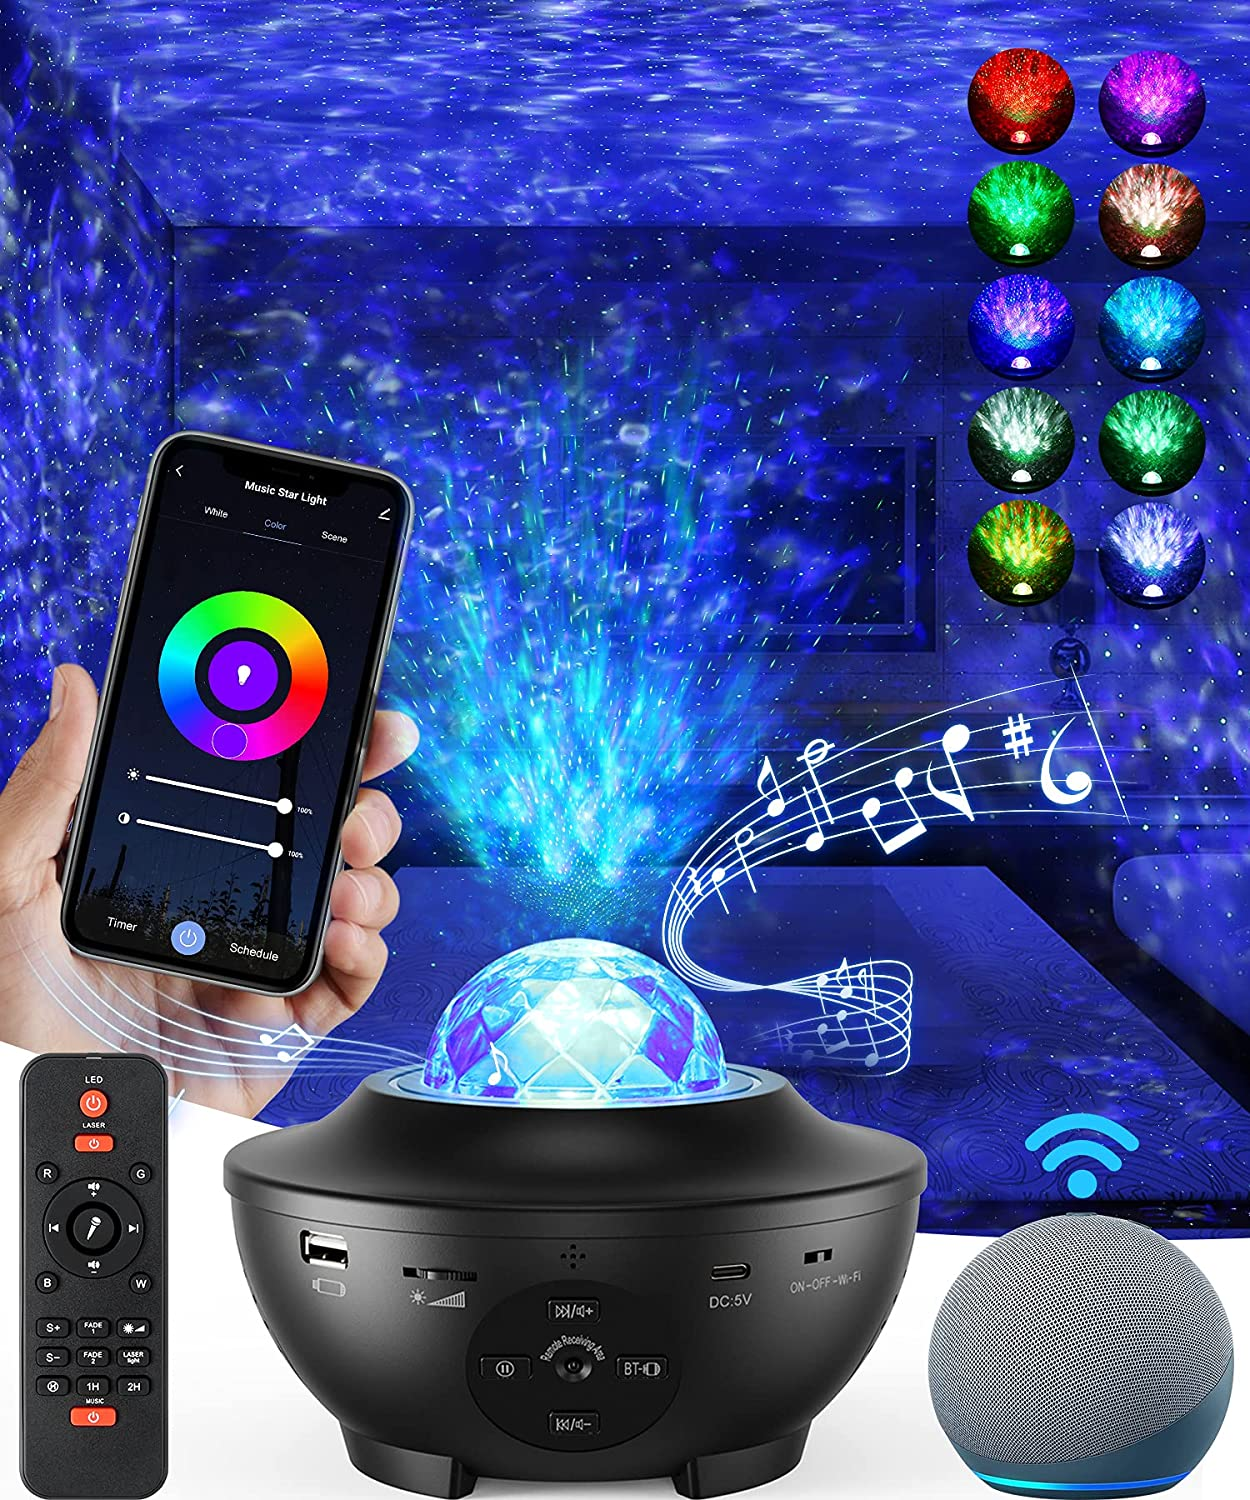 Star Projector Galaxy Projector, Sky Night Light for Bedroom, Room Decor for Kids and Adults, 8 in 1 Smart WiFi Music Star Lights with Remote Control, Work with Alexa, Google Assistant